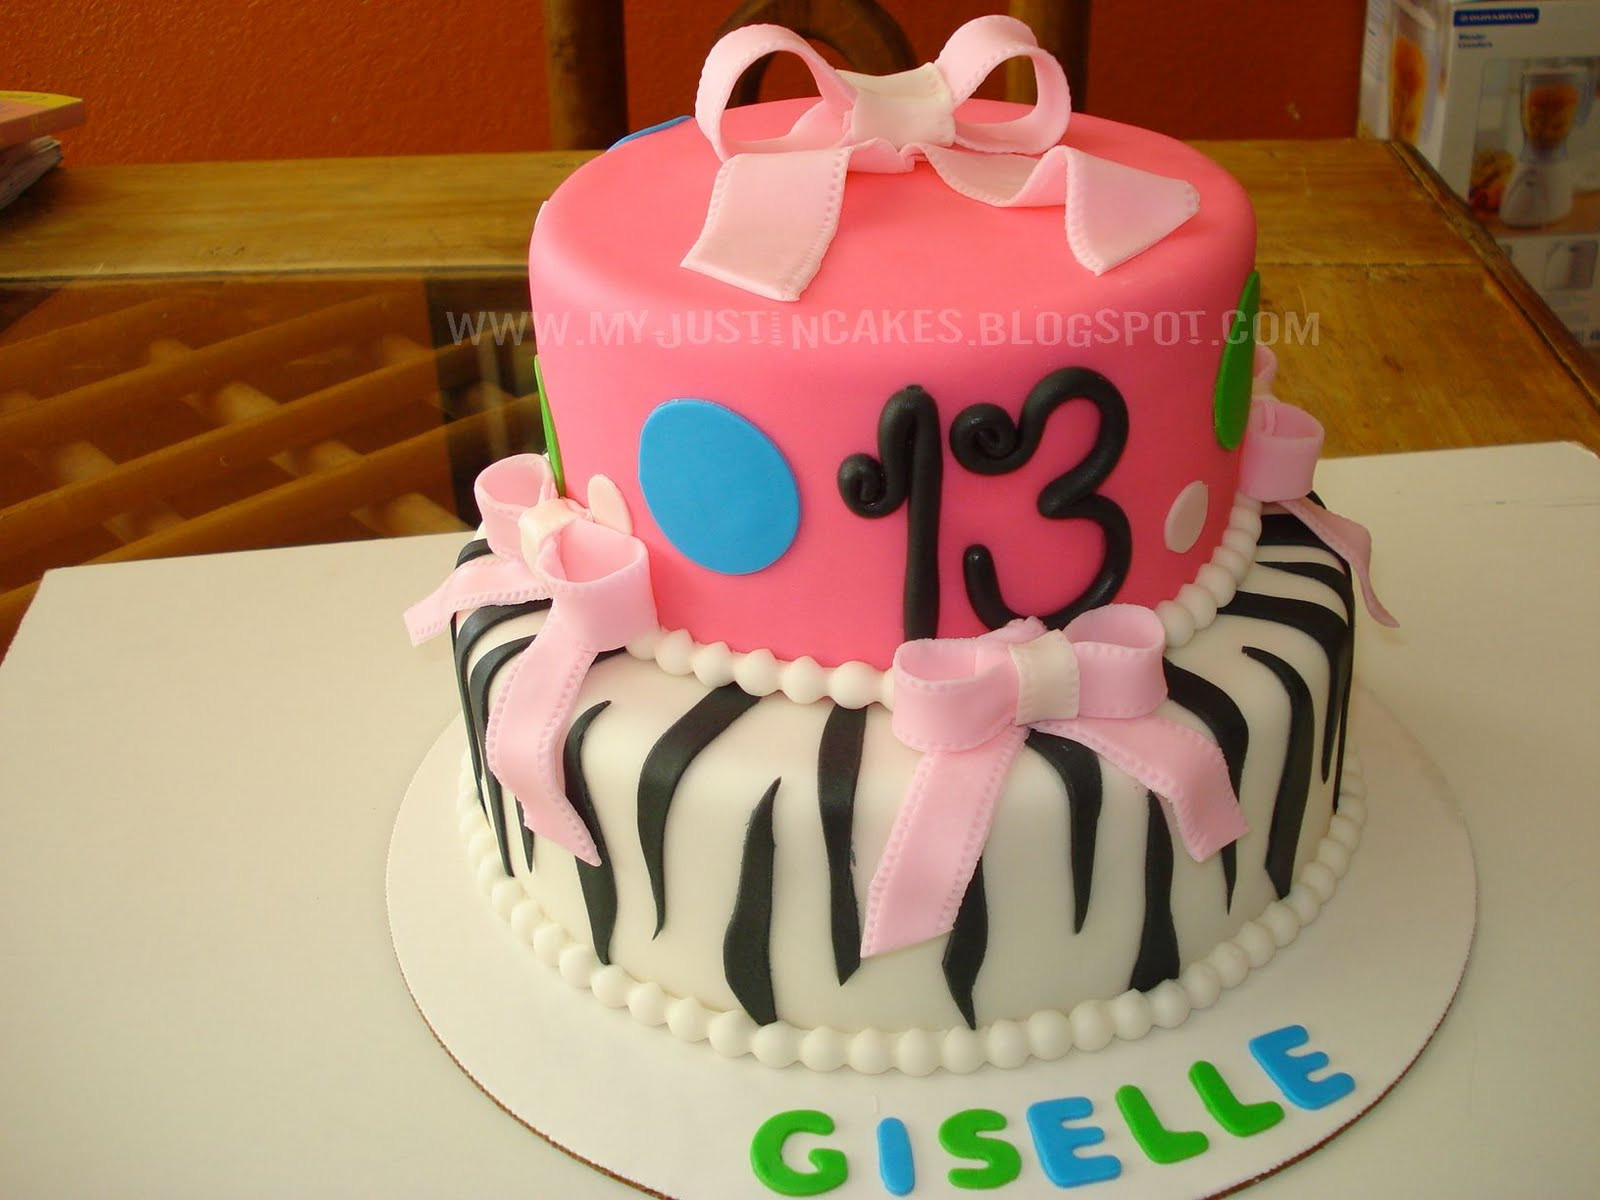 Best ideas about 13 Year Old Girl Birthday Cake . Save or Pin Just in Cakes 13 Year Old Girl Birthday Cake Now.